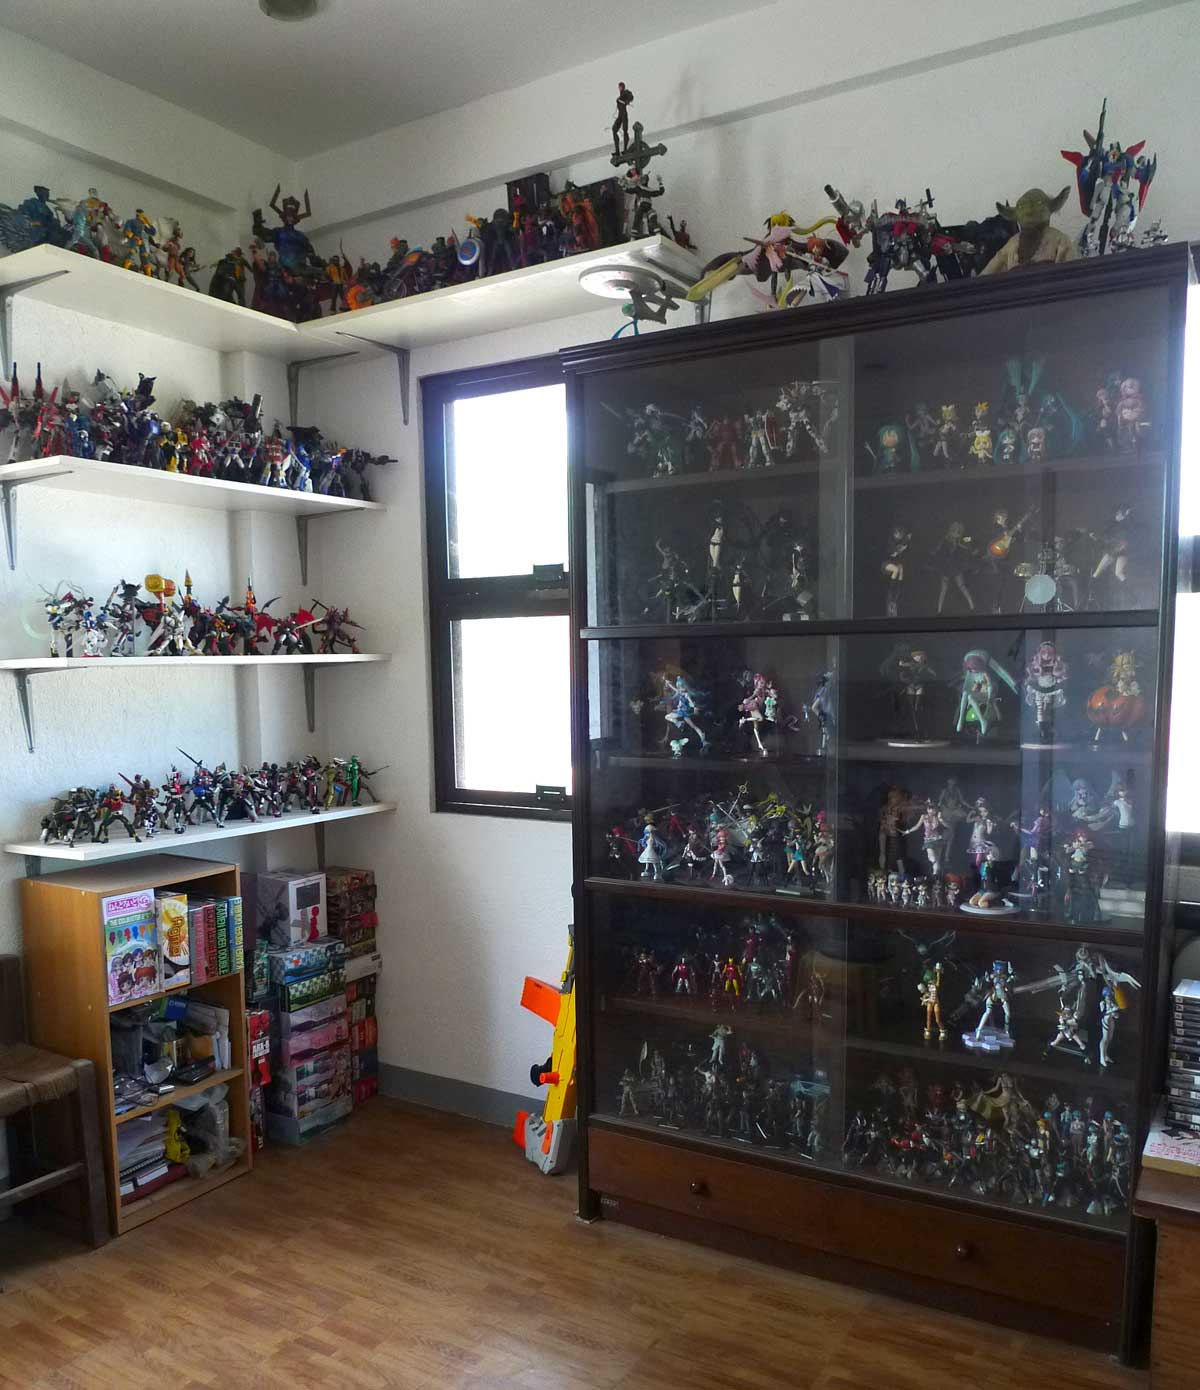 The Wall Shelves And The Main Display Cabinet